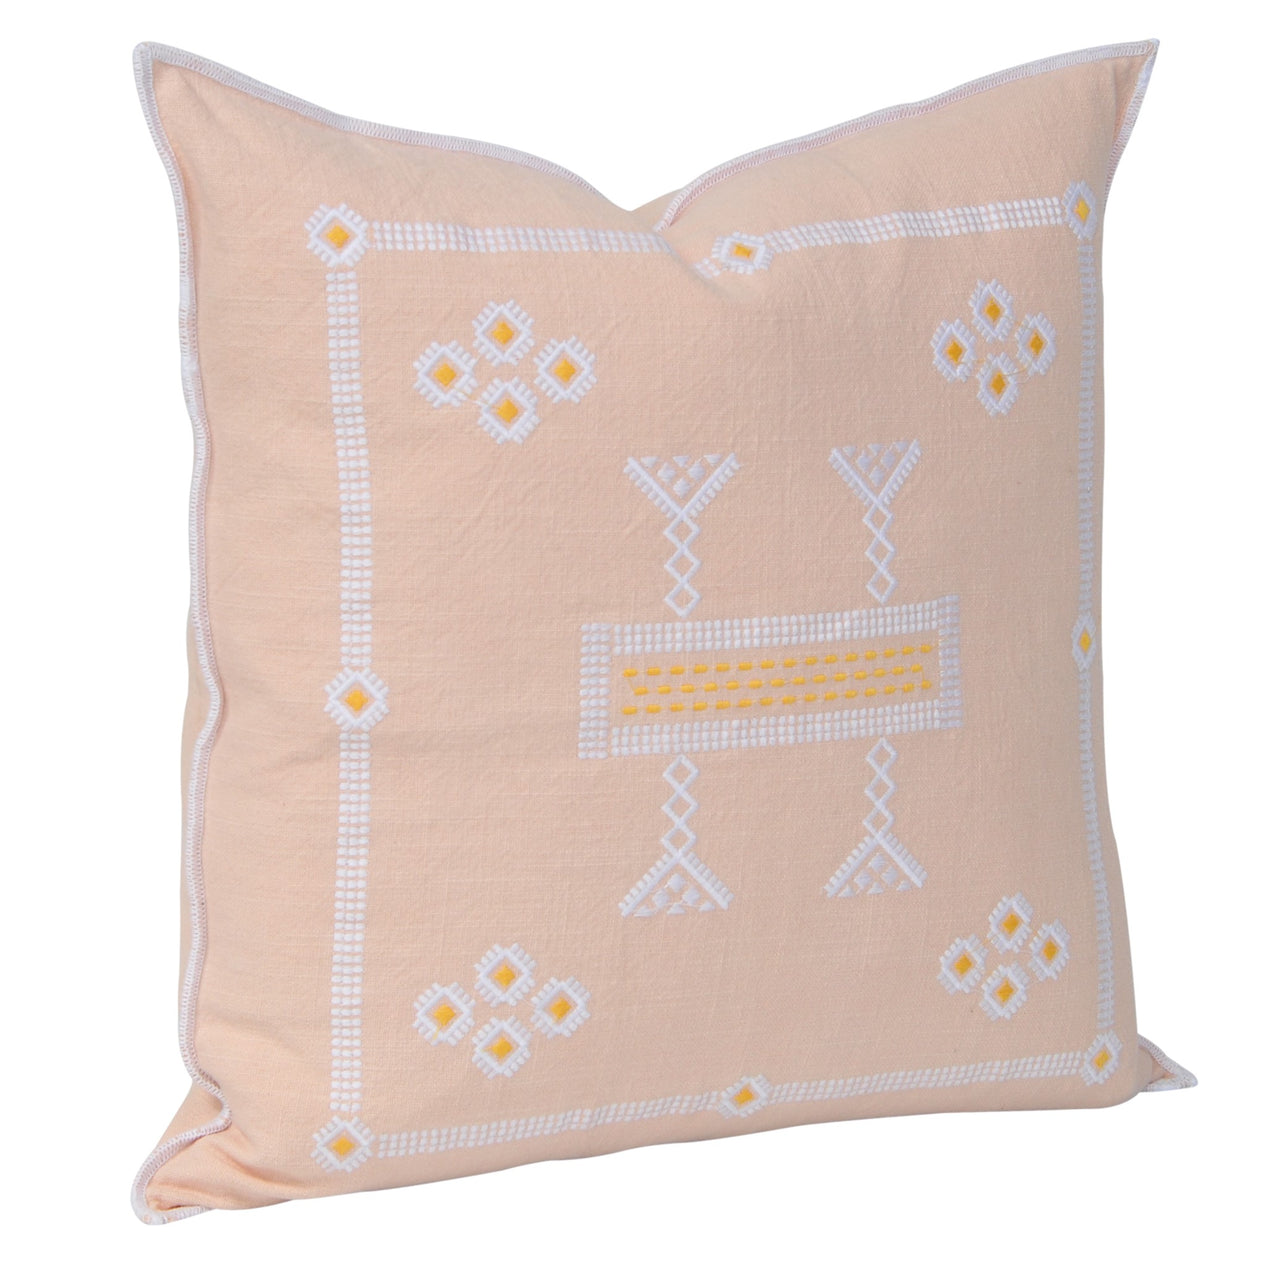 Phoenix Cushion- Blush